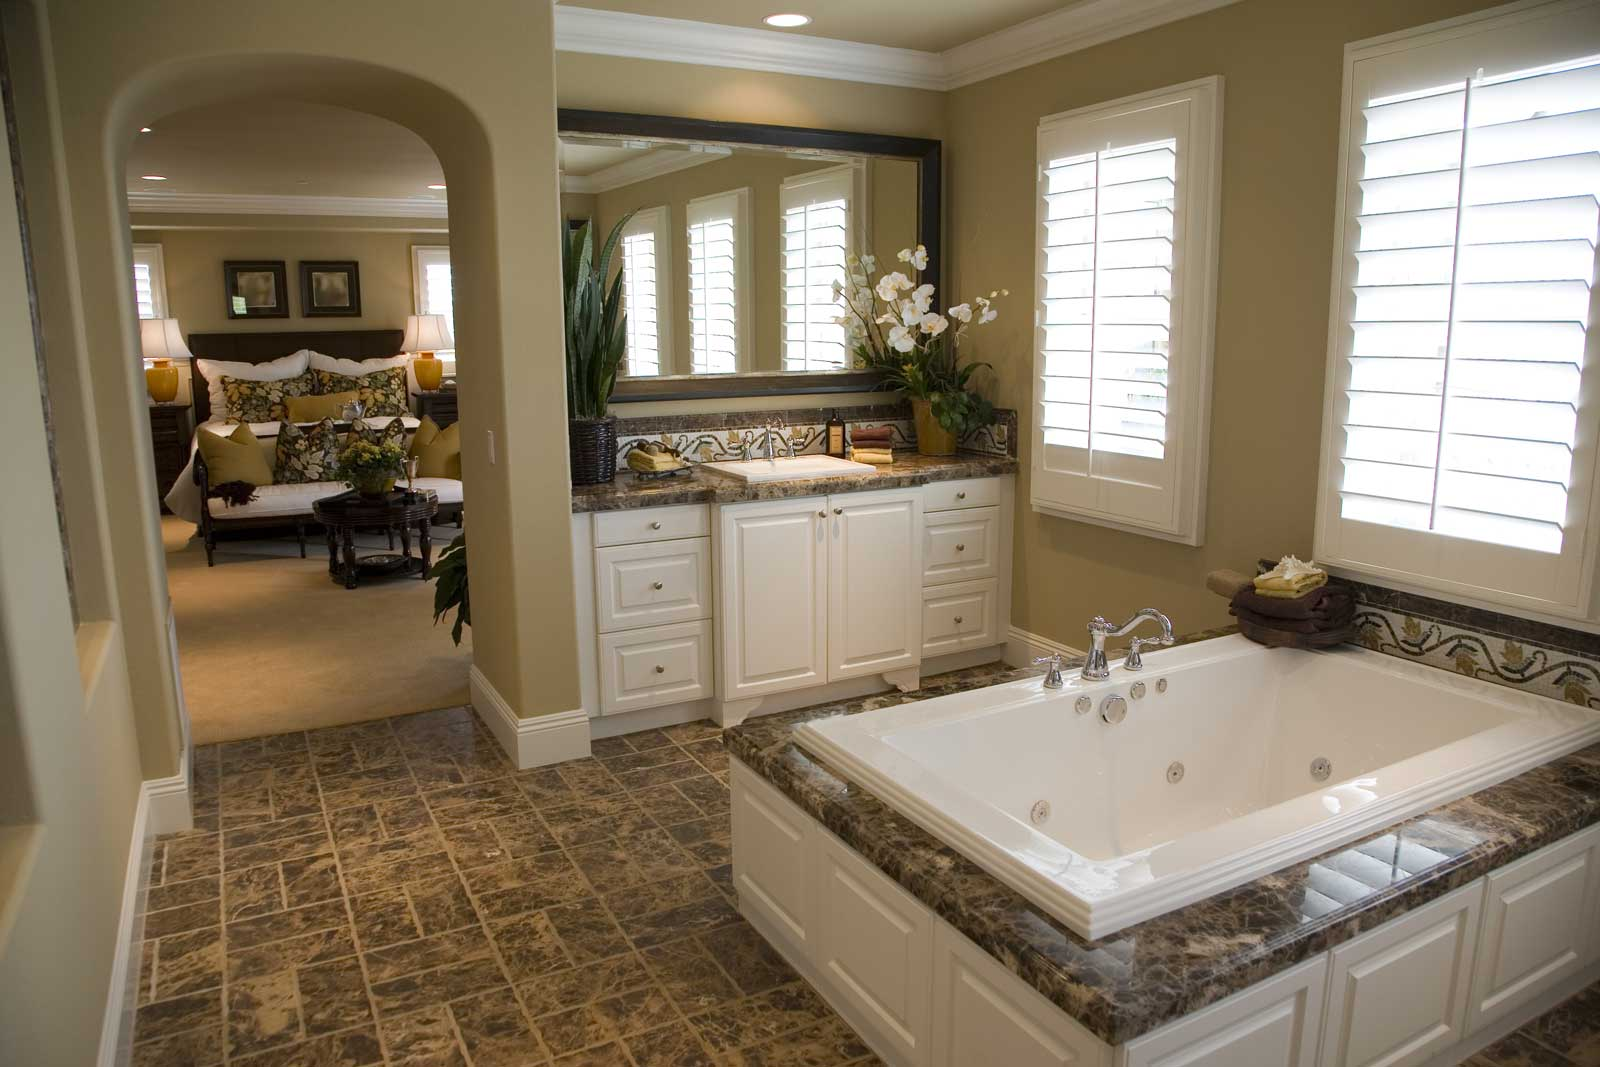 Flooring Company In Cape Coral Fl Budget Floors Amp More